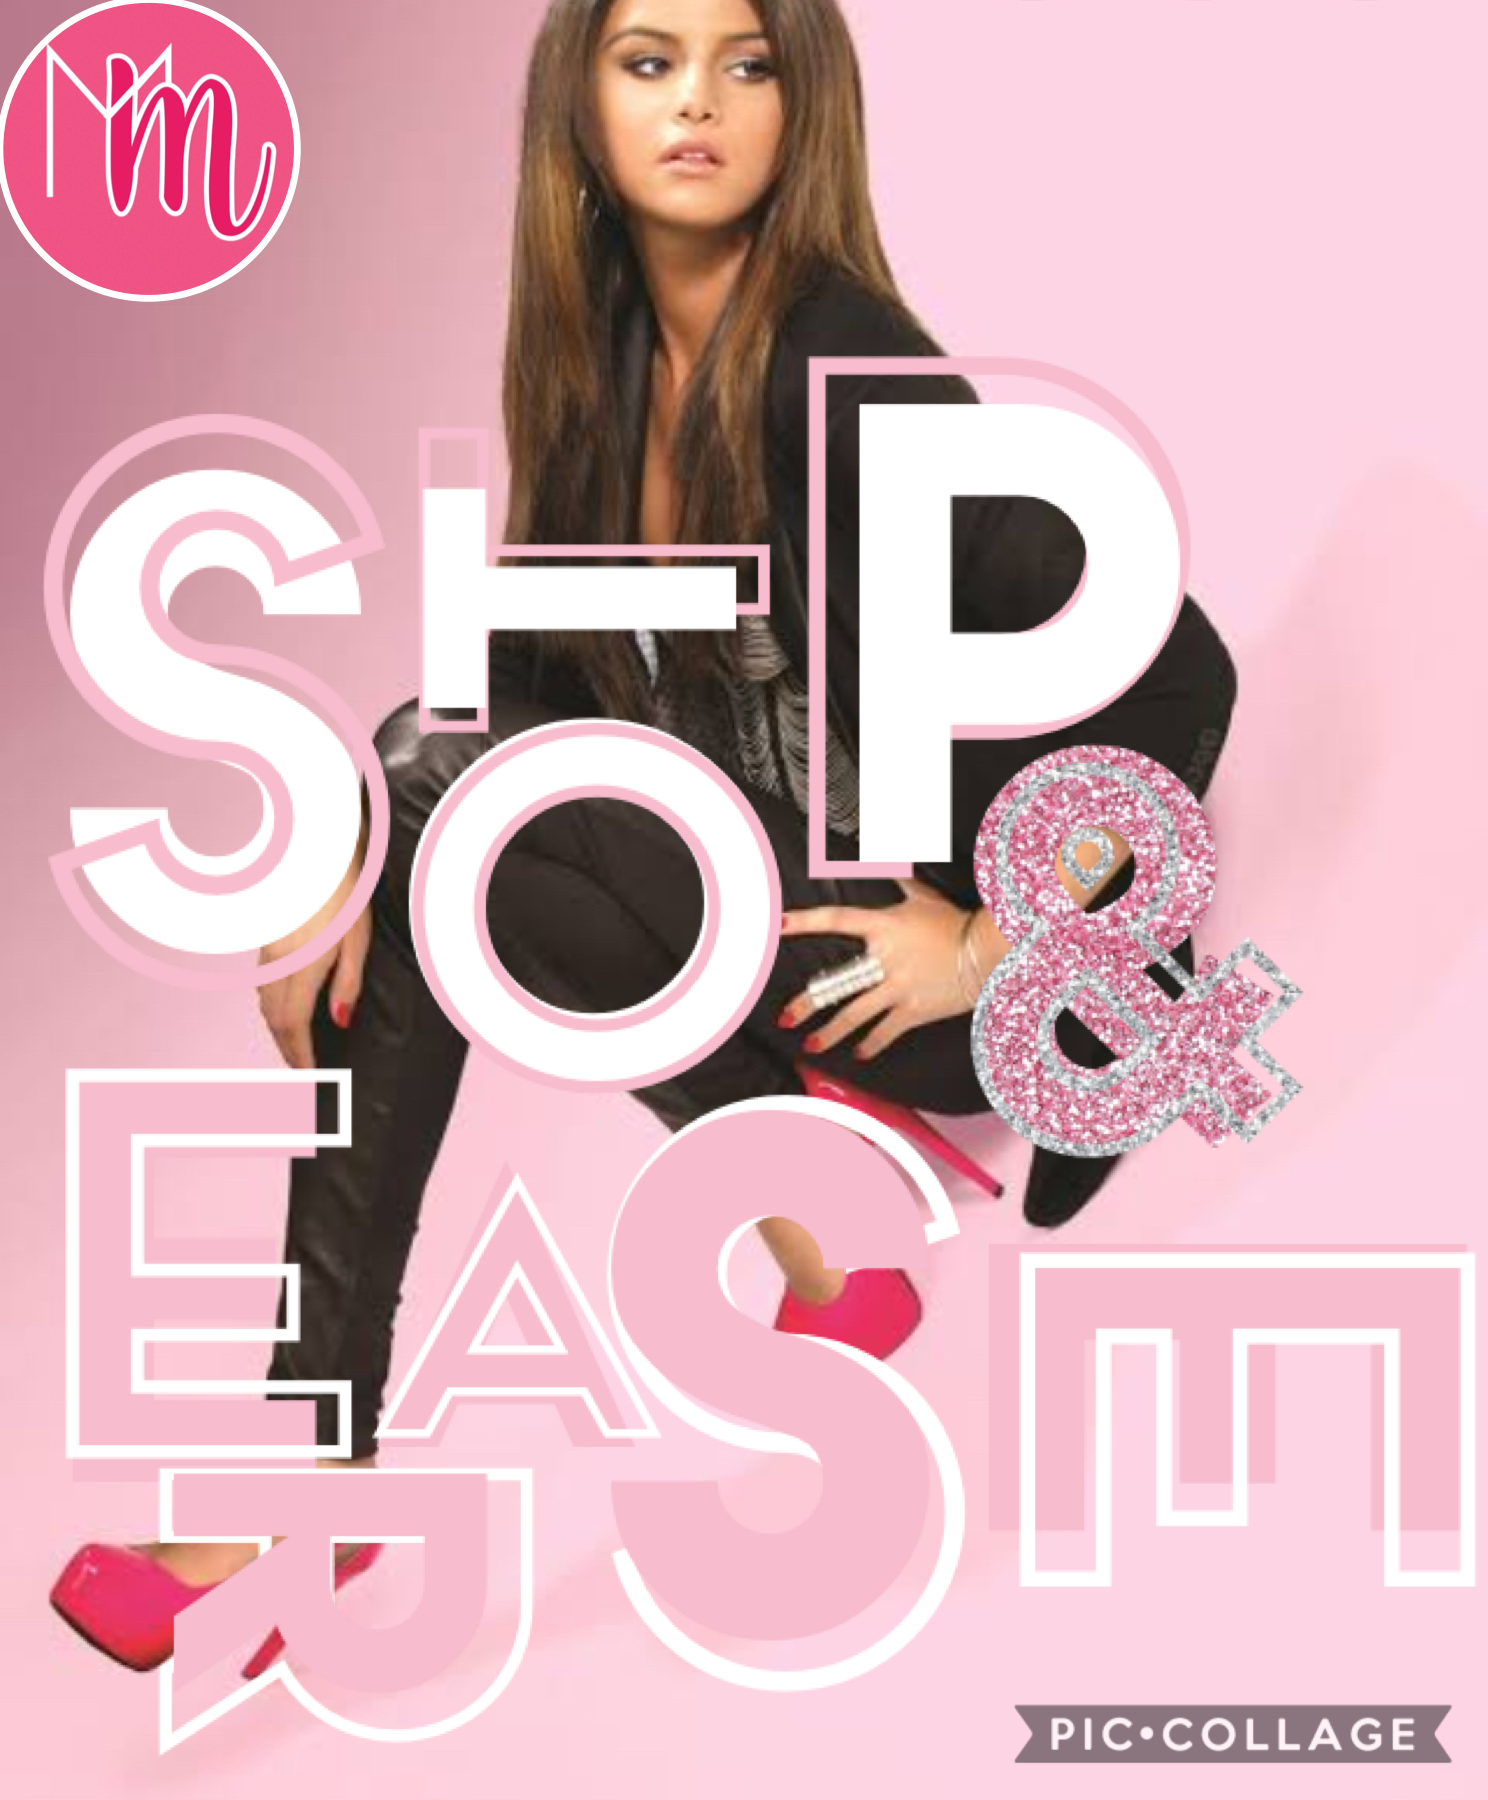 Tap  I'm in love with this song, Stop & Erase by Selena Gomez & The Scene.